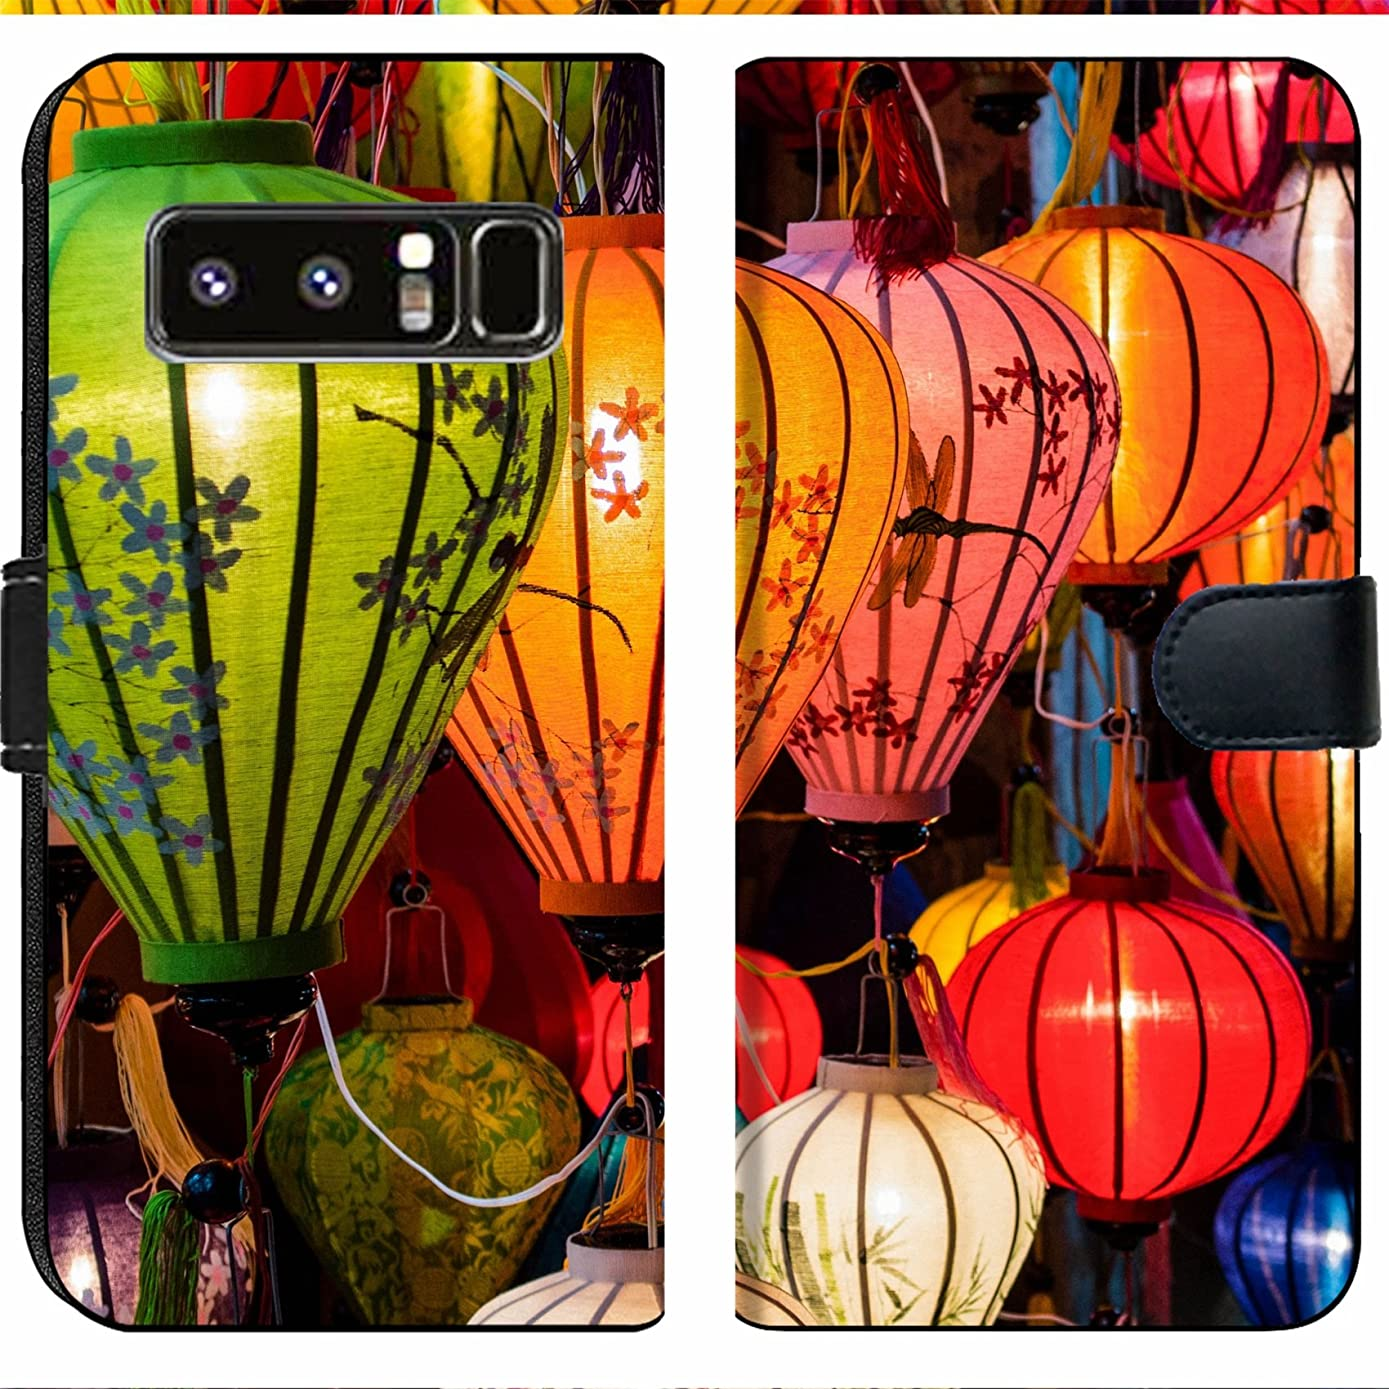 Samsung Galaxy Note 8 Flip Fabric Wallet Case Image ID: 31089698 Traditional Lamps in Old Town Hoi an Central Vietnam